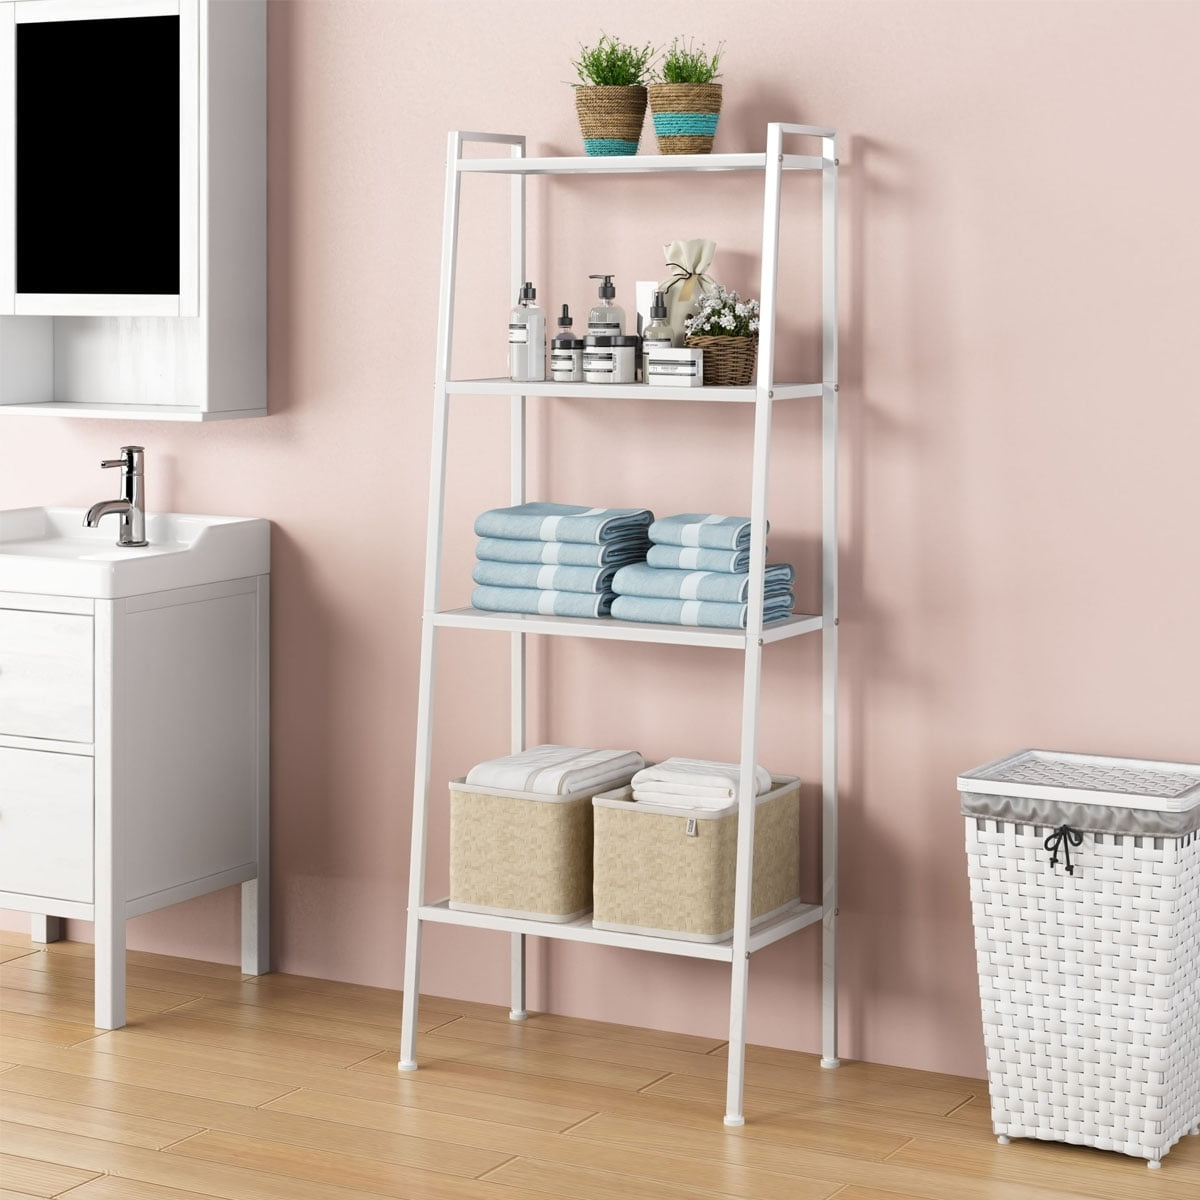 Wire Shelving Unit 4 Tier Kitchen Storage Rack Metal Shelving Unit For Kitchen Pantry Laundry Garage Closet Utility Ladder Shelf Bookcase Plant Stand For Office Bathroom Living Room Balcony Walmart Com Walmart Com